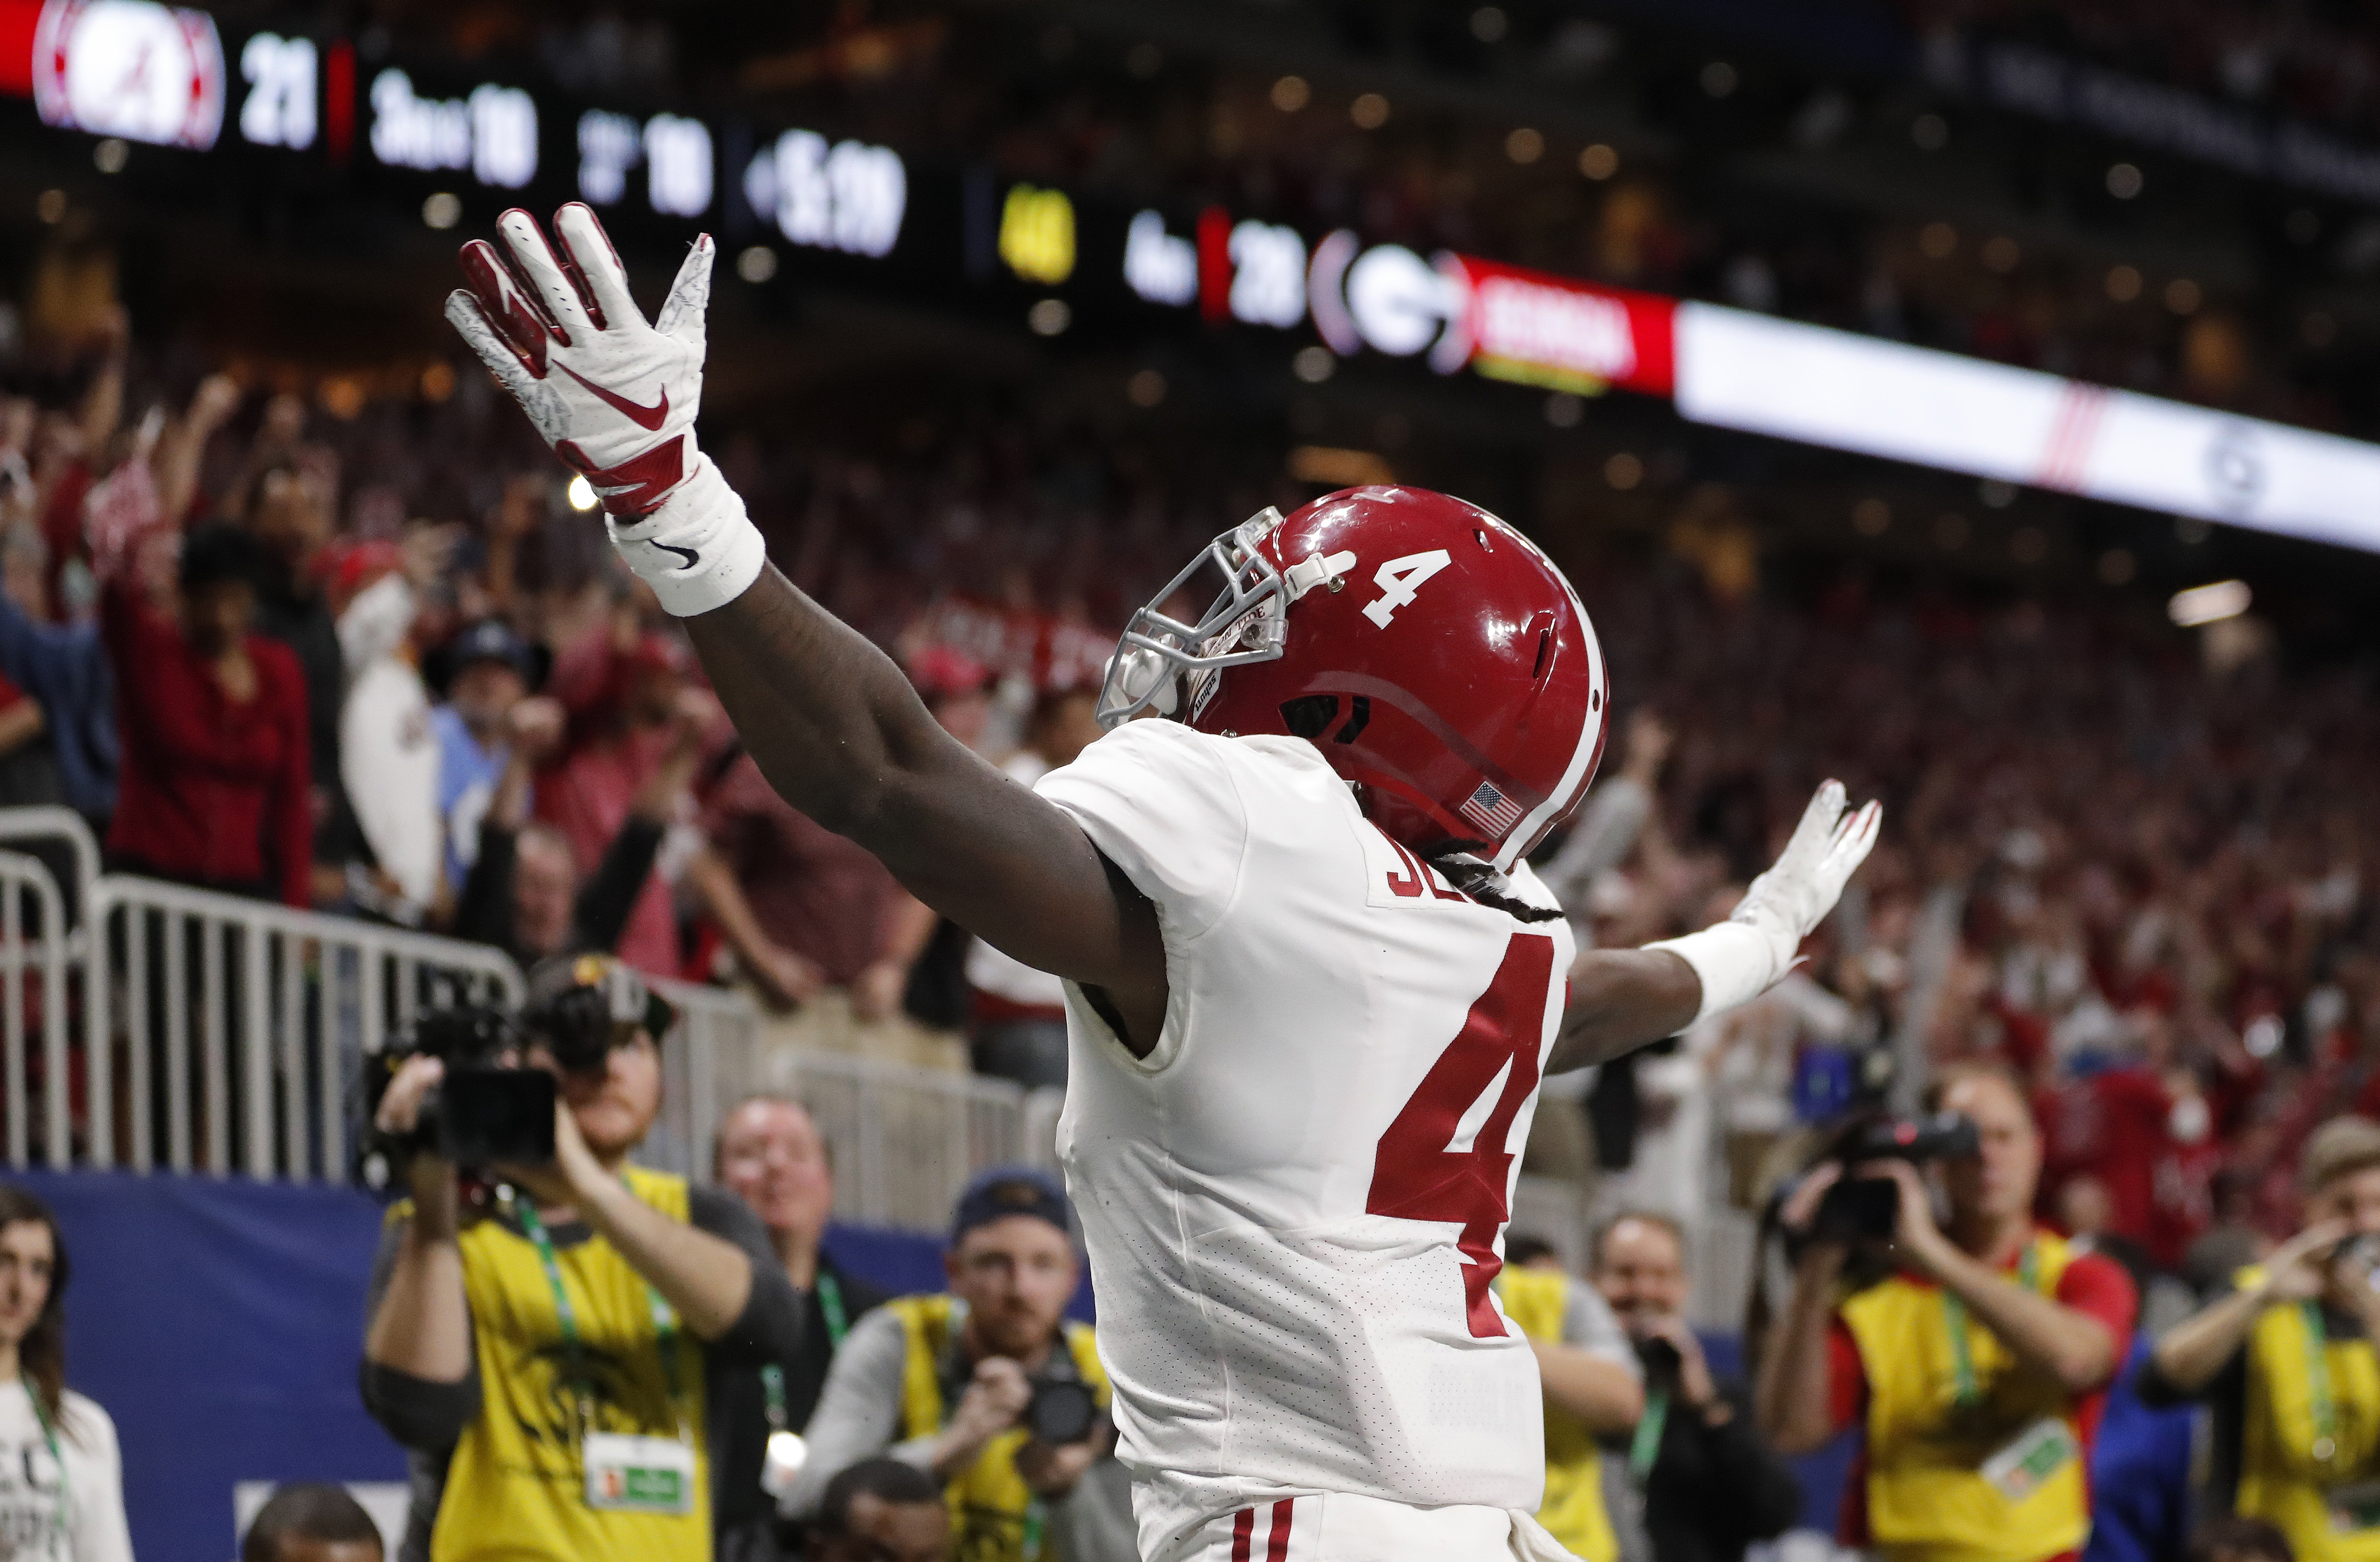 AL.com All-Access: Is Alabama still the best team in the SEC?